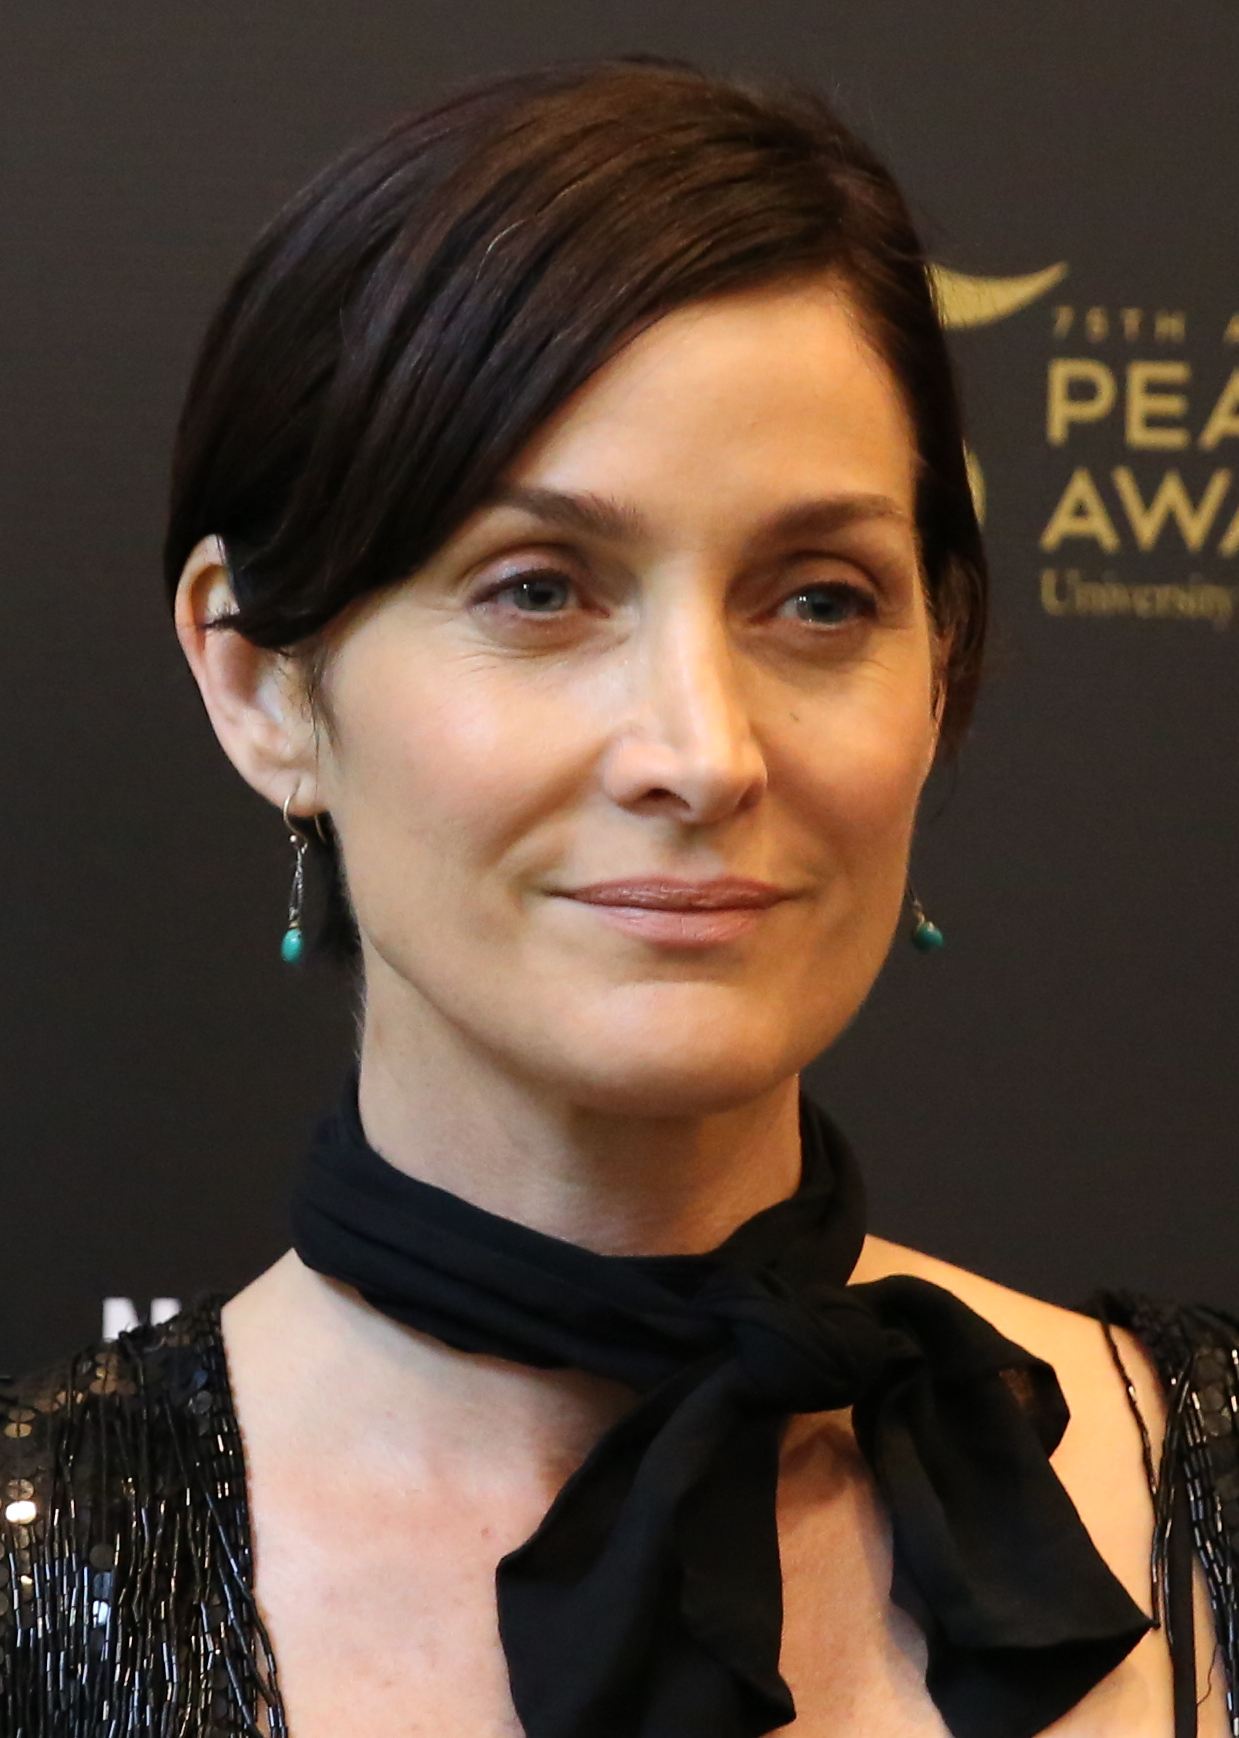 Carrie Anne Moss Wikipedia